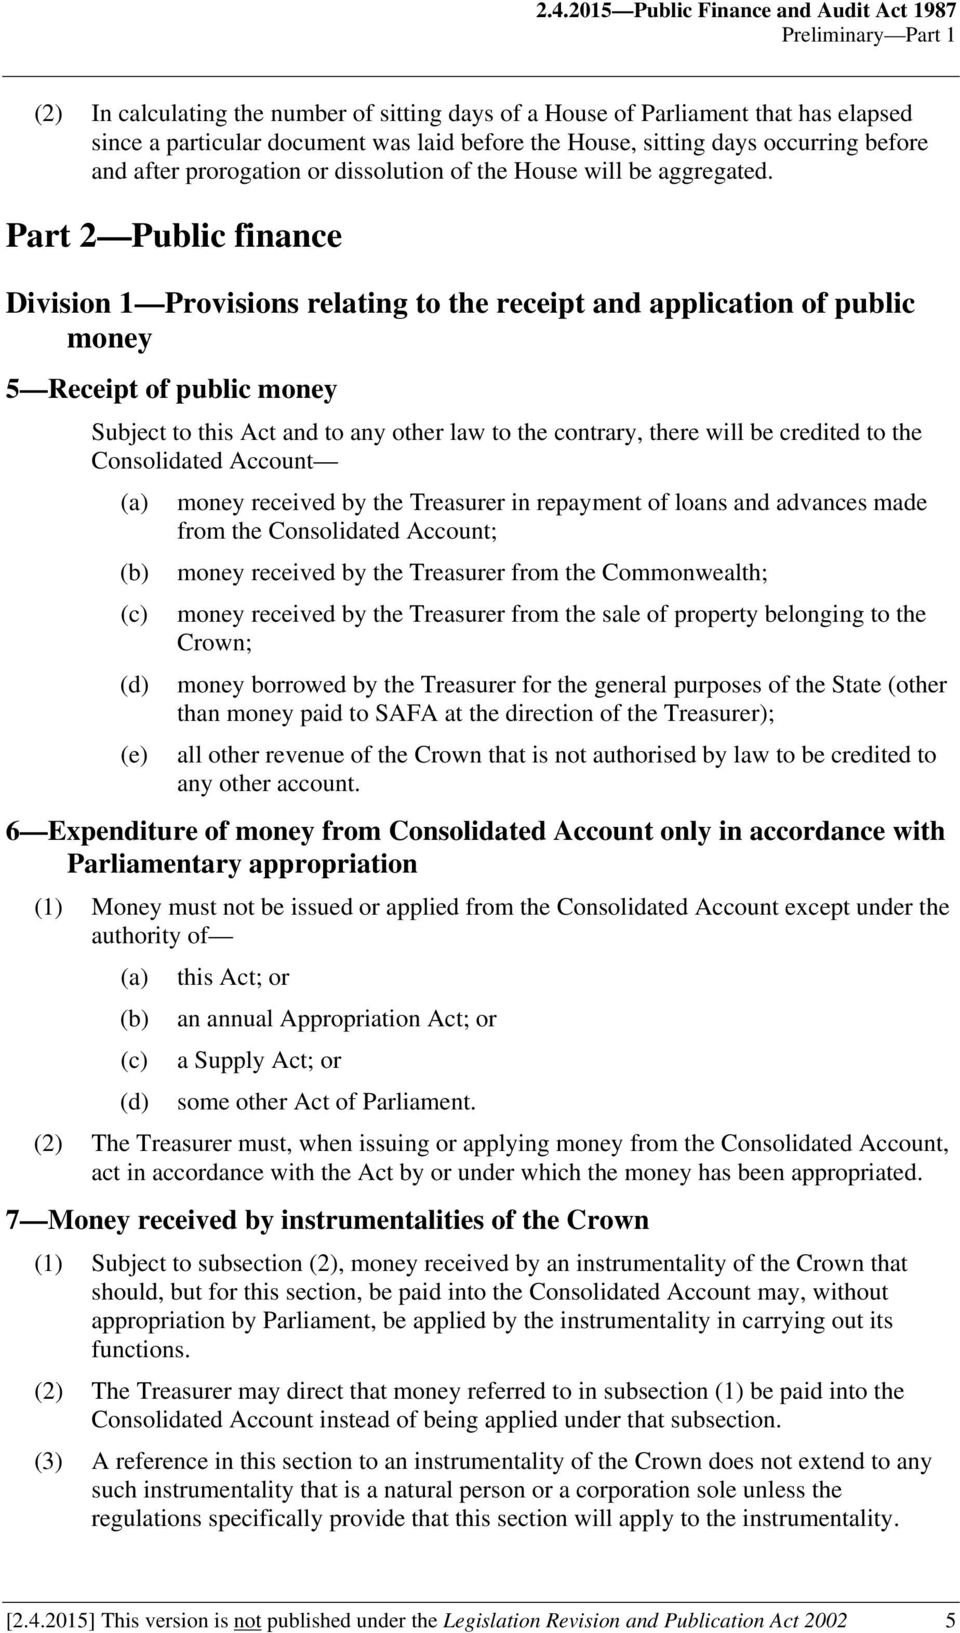 Part 2 Public finance Division 1 Provisions relating to the receipt and application of public money 5 Receipt of public money Subject to this Act and to any other law to the contrary, there will be